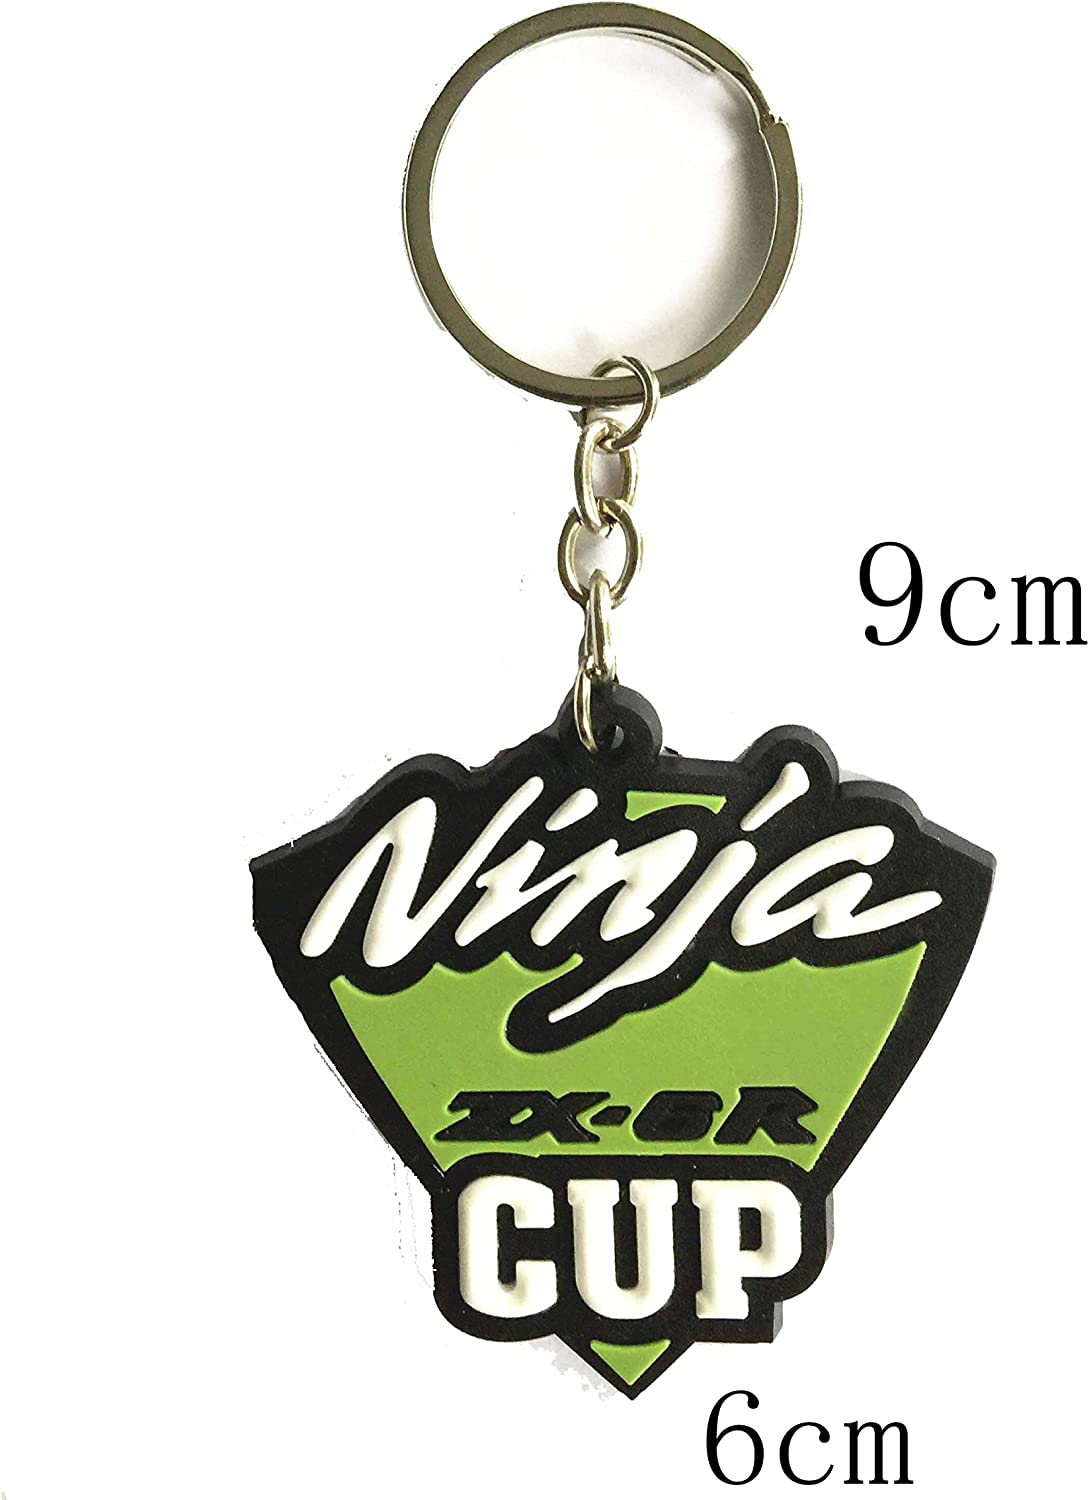 Decal Story Red Rubber Key Chain Ring Fob Holder for Kawasaki Ninja